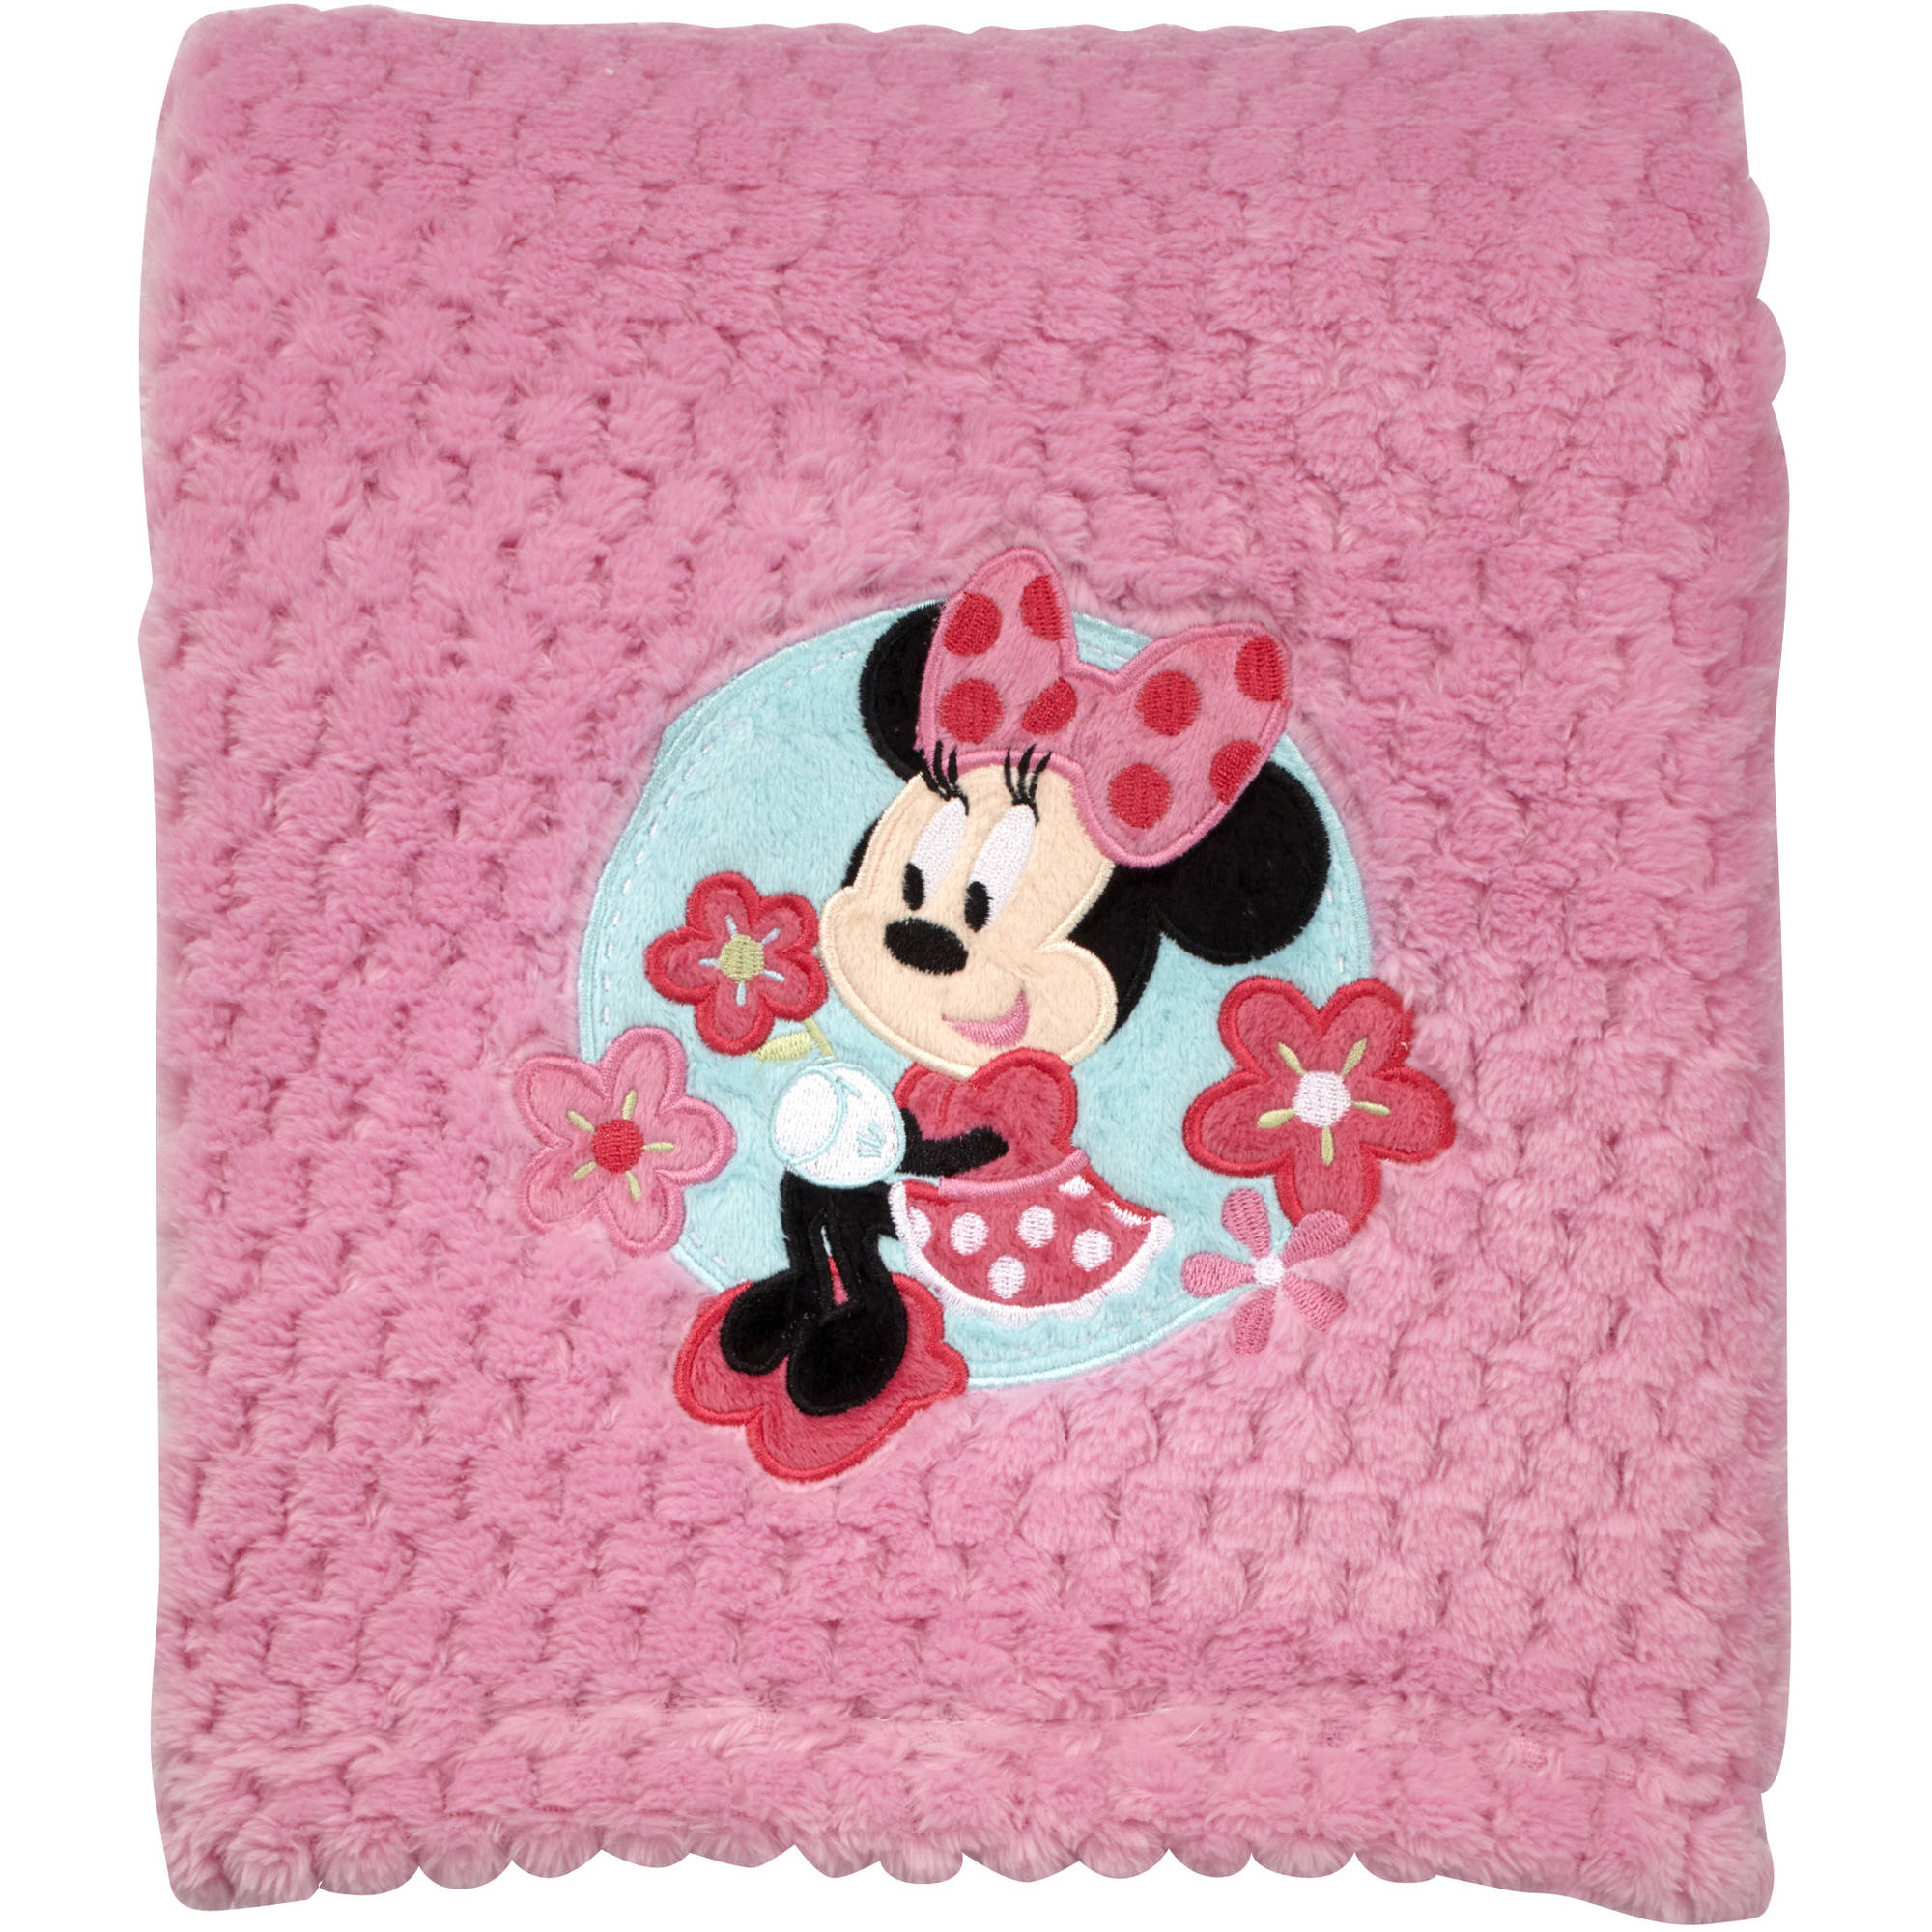 Disney Minnie Mouse Plush Popcorn Applique Blanket